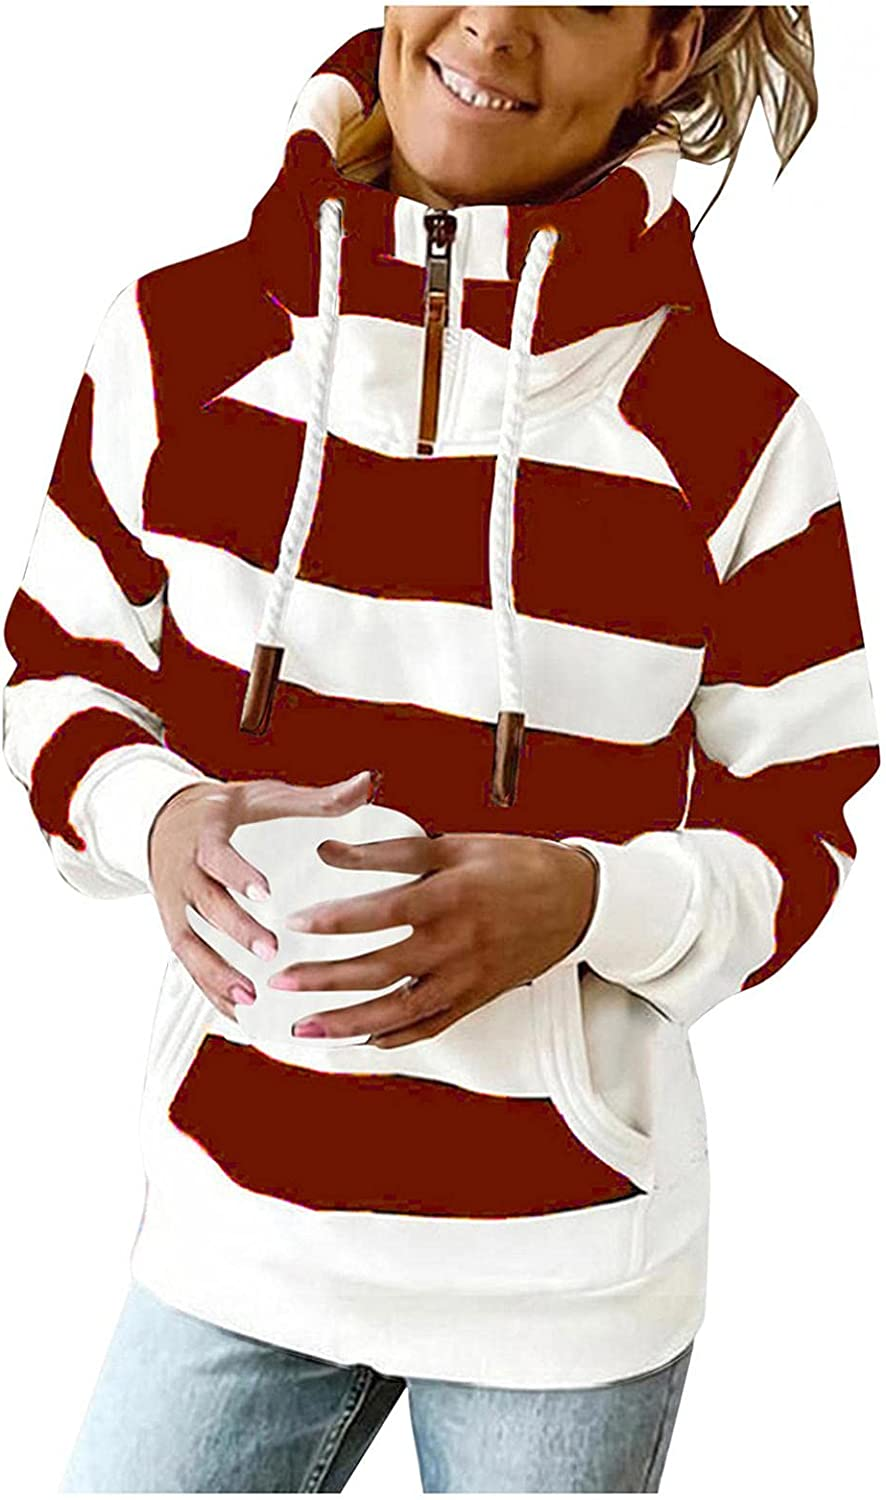 ONHUON Hoodies for Women, Womens Striped Color Block Quarter Zip Tops Long Sleeve High Neck Hooded Sweatshirts with Pocket